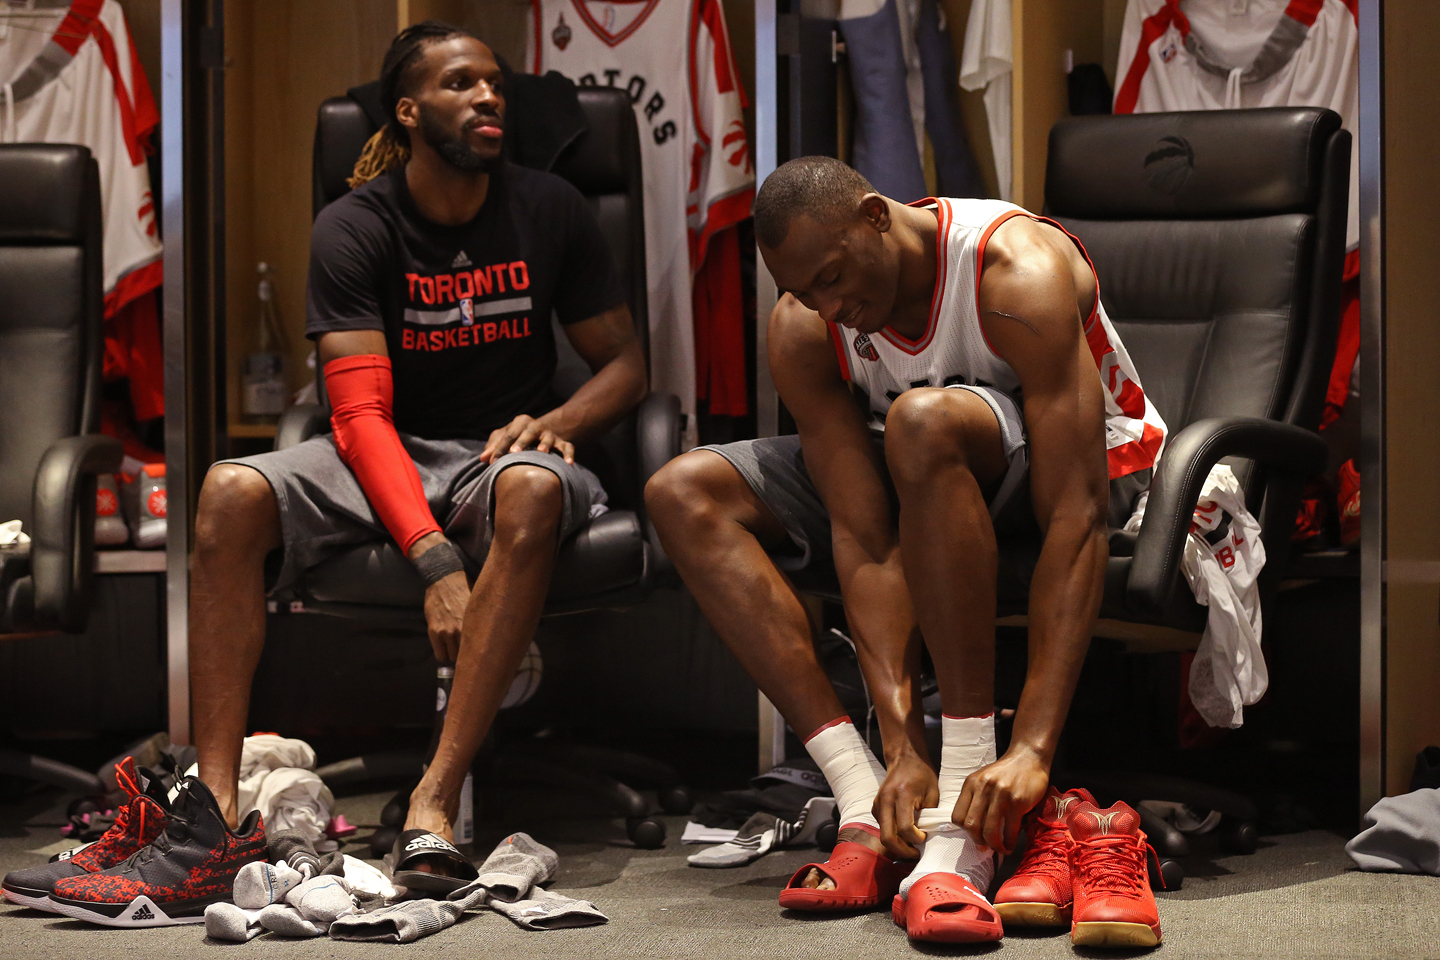 DeMarre Carroll #5 and Bismack Biyombo #8 of the Toronto Raptors get ready before Game Six of the NBA Eastern Conference Finals against the Cleveland Cavaliers at Air Canada Centre on May 27, 2016 in Toronto, Ontario, Canada.